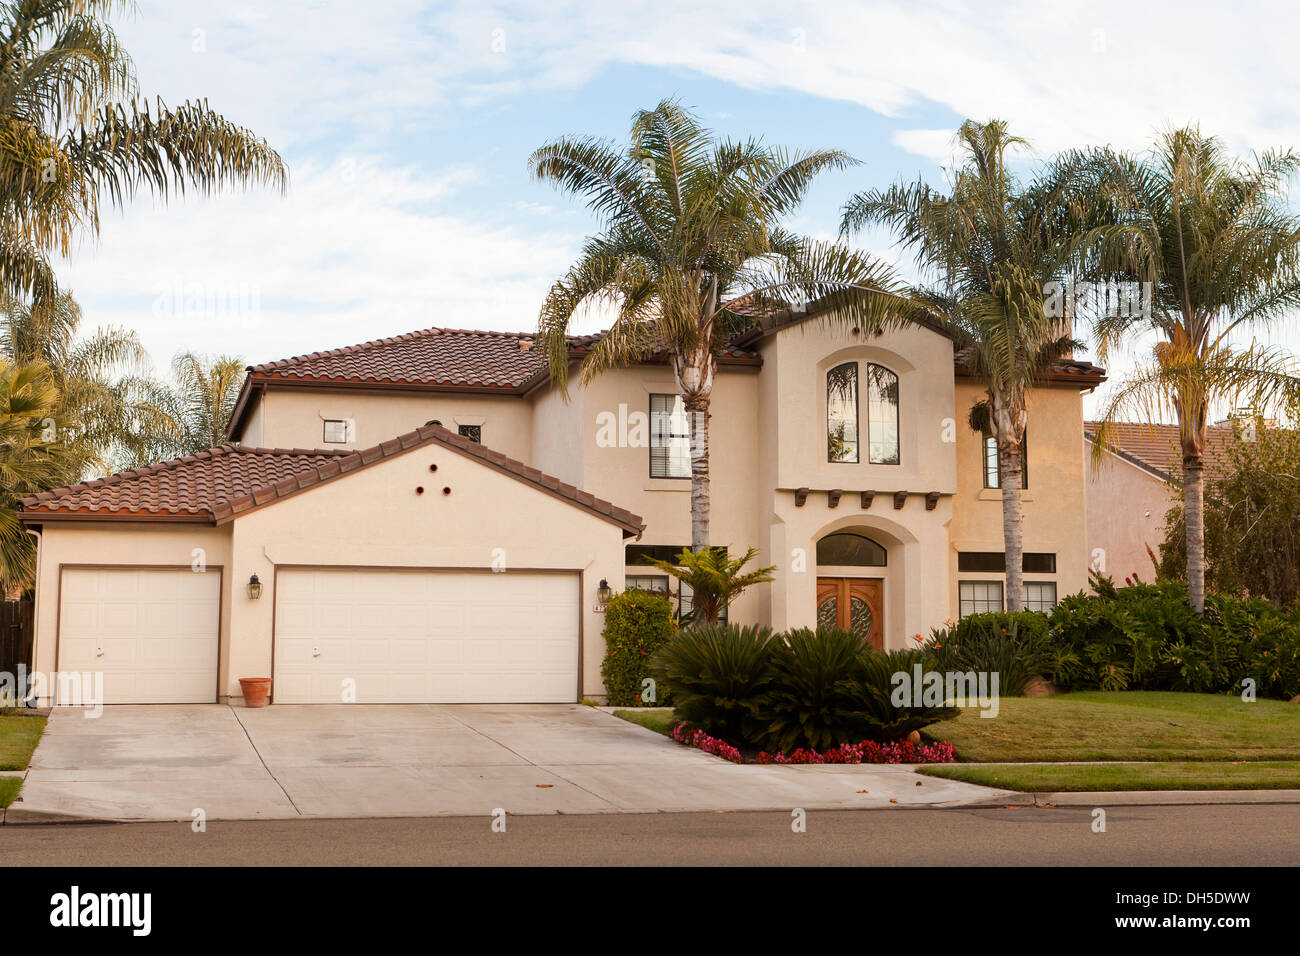 Late Model California 2 Story Middle Class Single Family